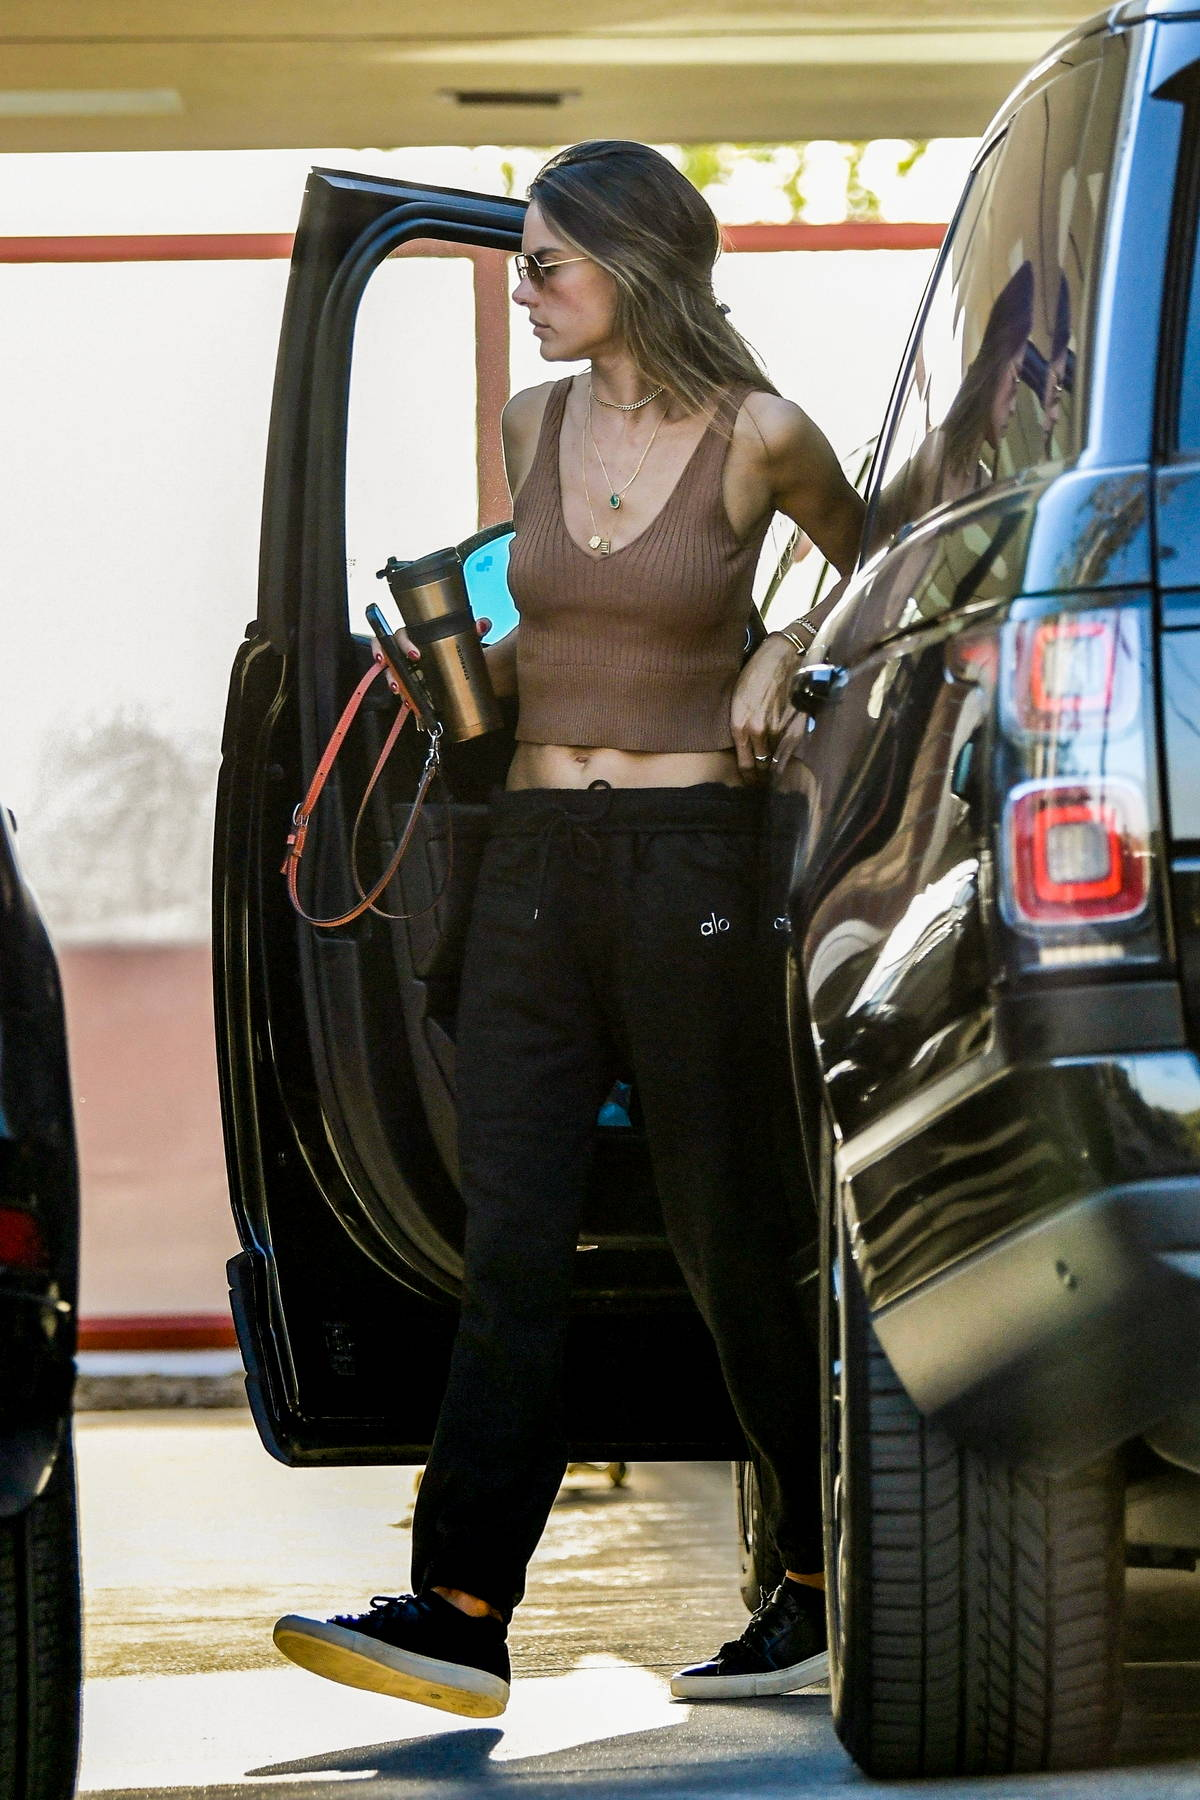 Alessandra Ambrosio displays her svelte figure in a cropped tank top while visiting a friend in Bel Air, California